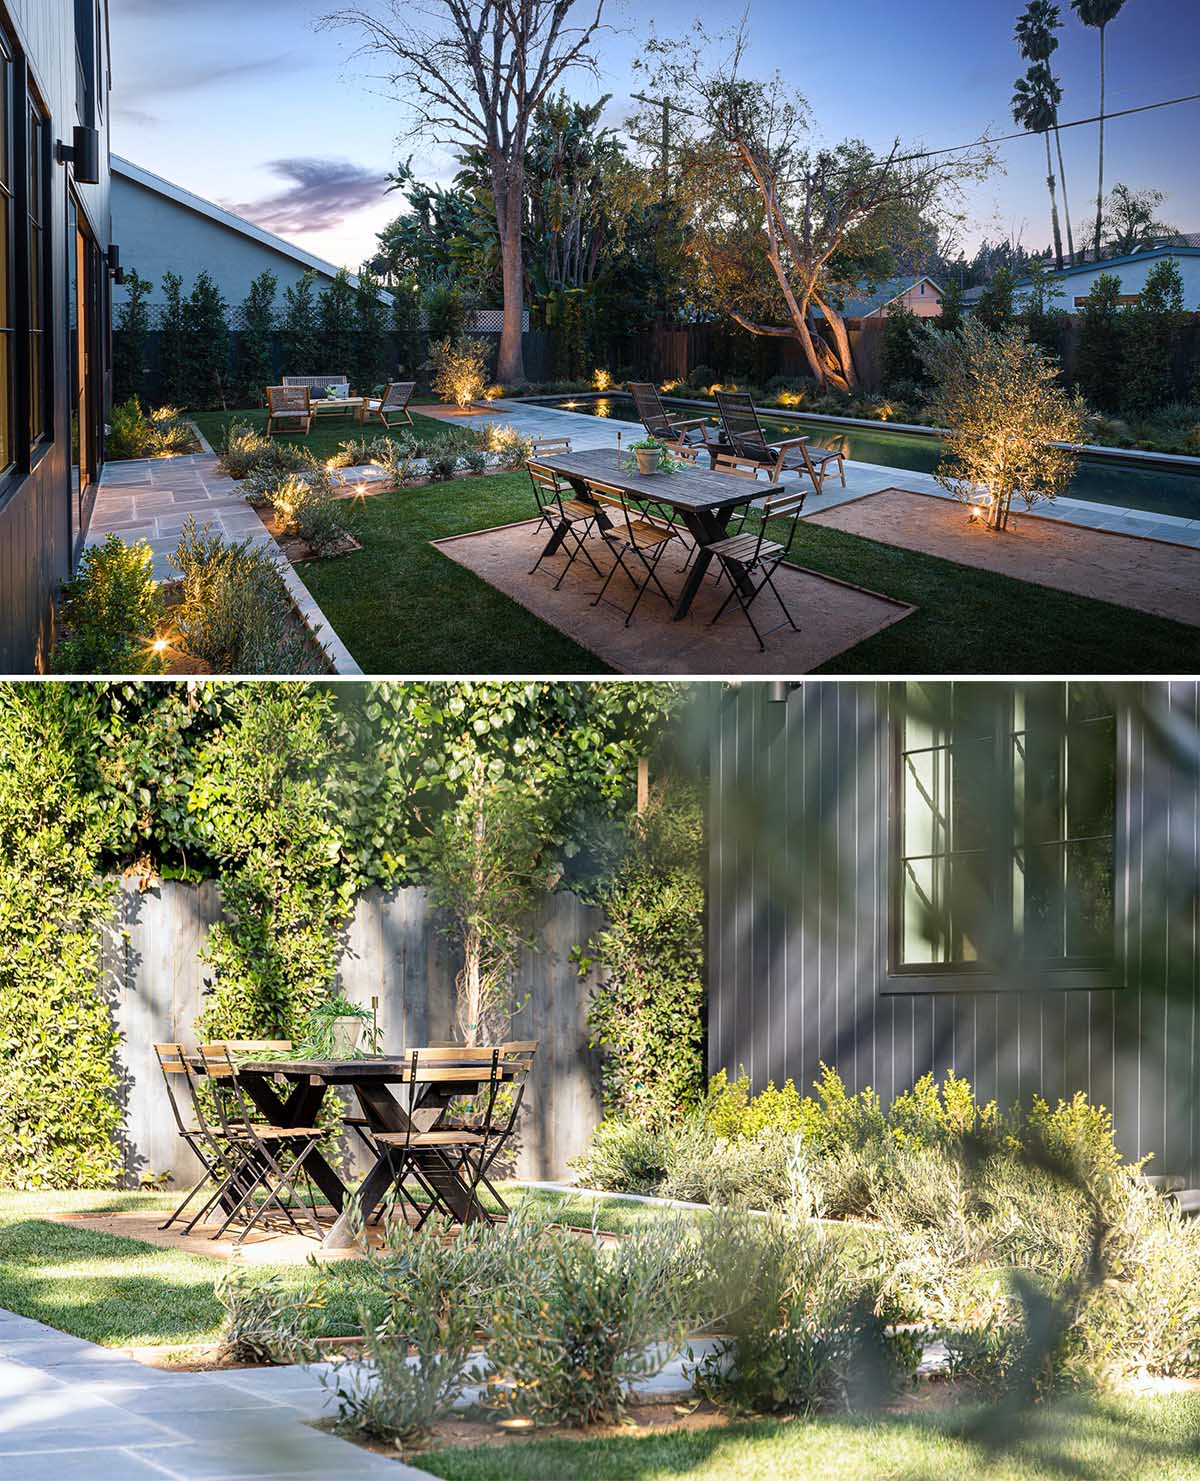 The outdoor space of this double A-frame house has been designed for entertaining, with an expansive patio for alfresco dining, and over 500 plants that add a lush texture and privacy to the yard.